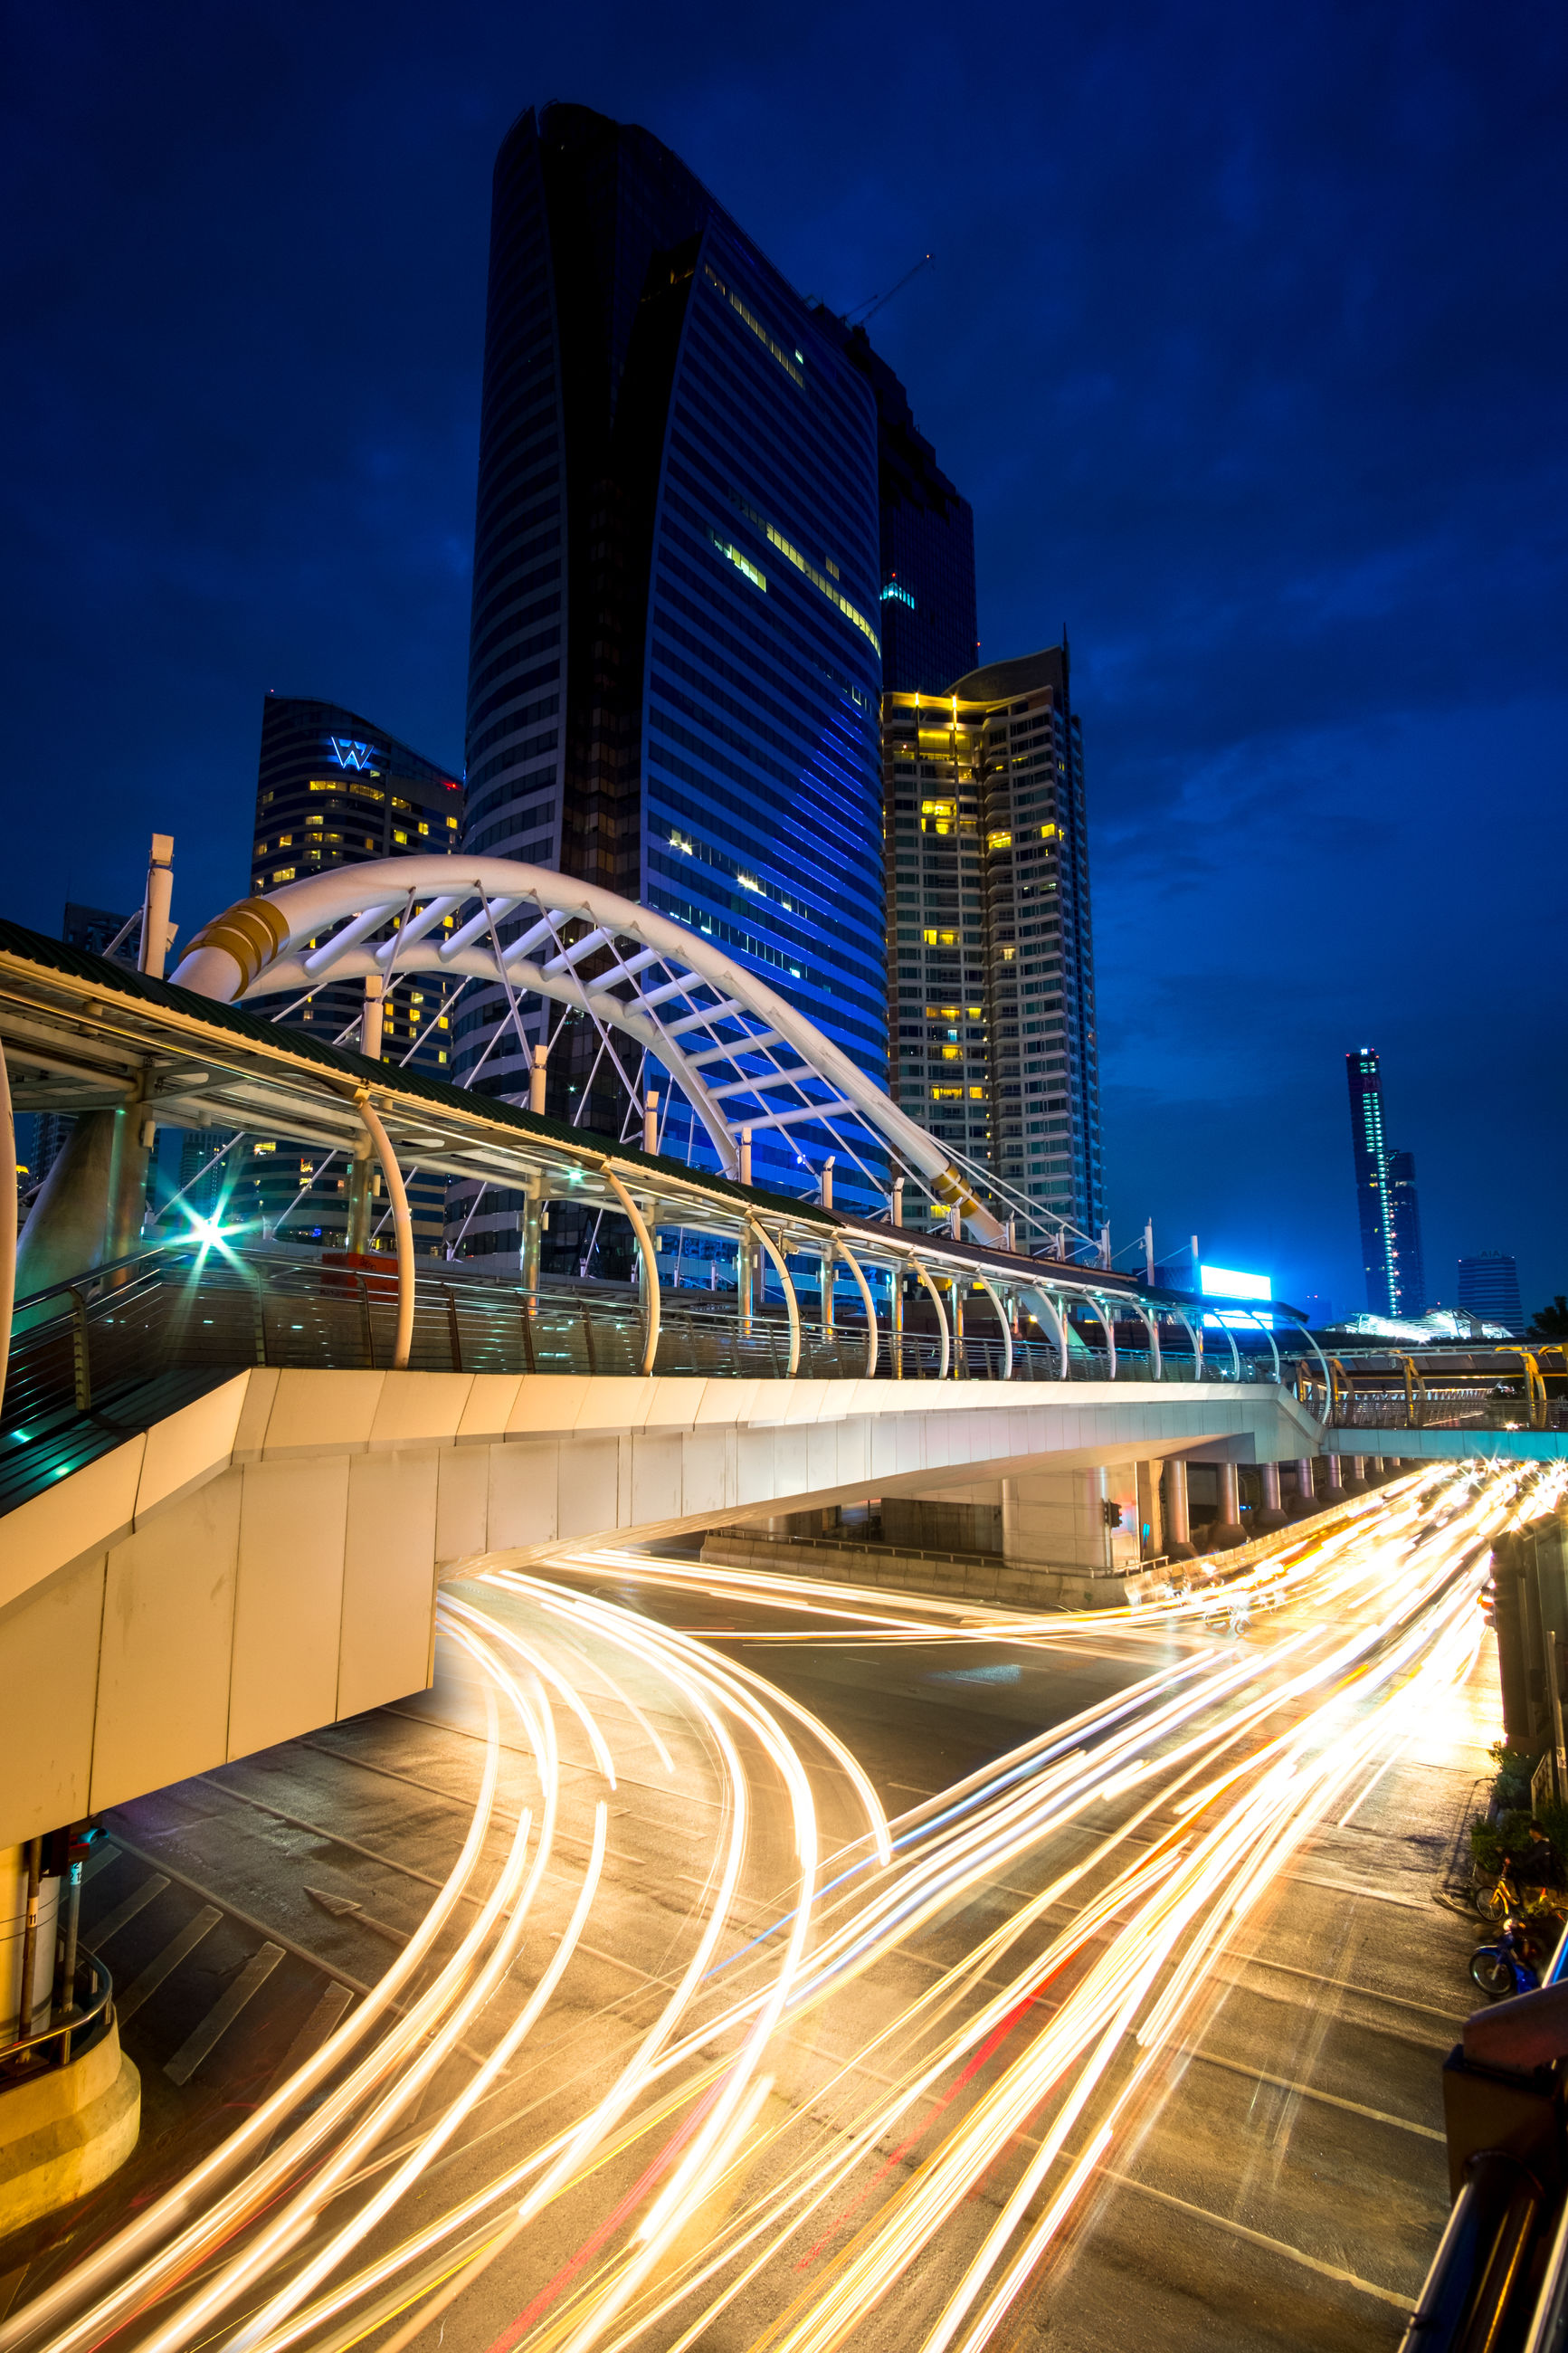 night, city, illuminated, light trail, architecture, speed, skyscraper, motion, traffic, transportation, long exposure, built structure, building exterior, modern, no people, rush hour, outdoors, urban skyline, sky